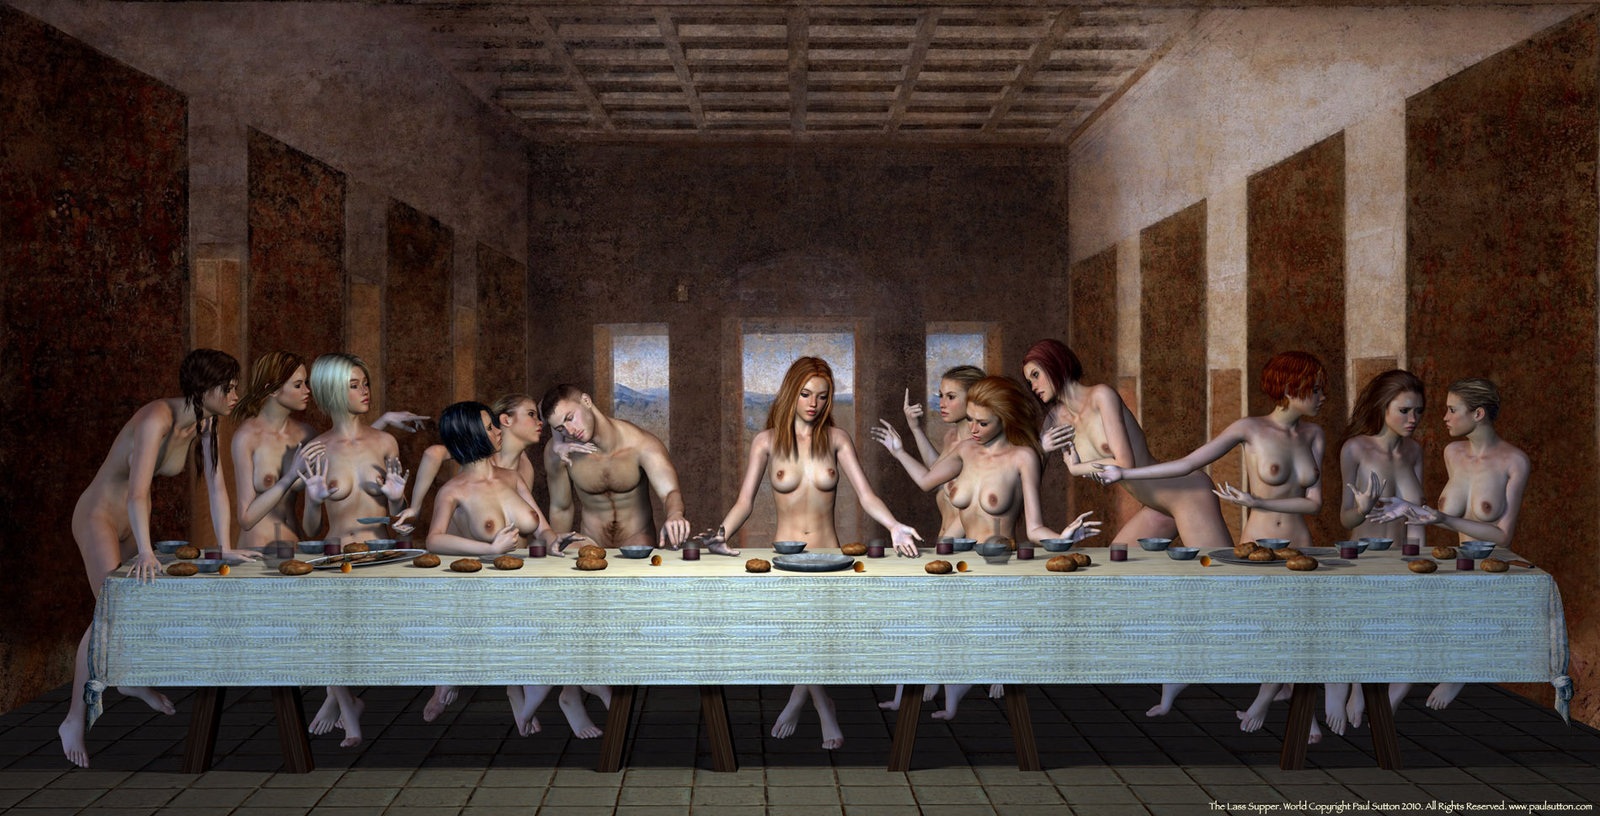 Da vinci's female representation